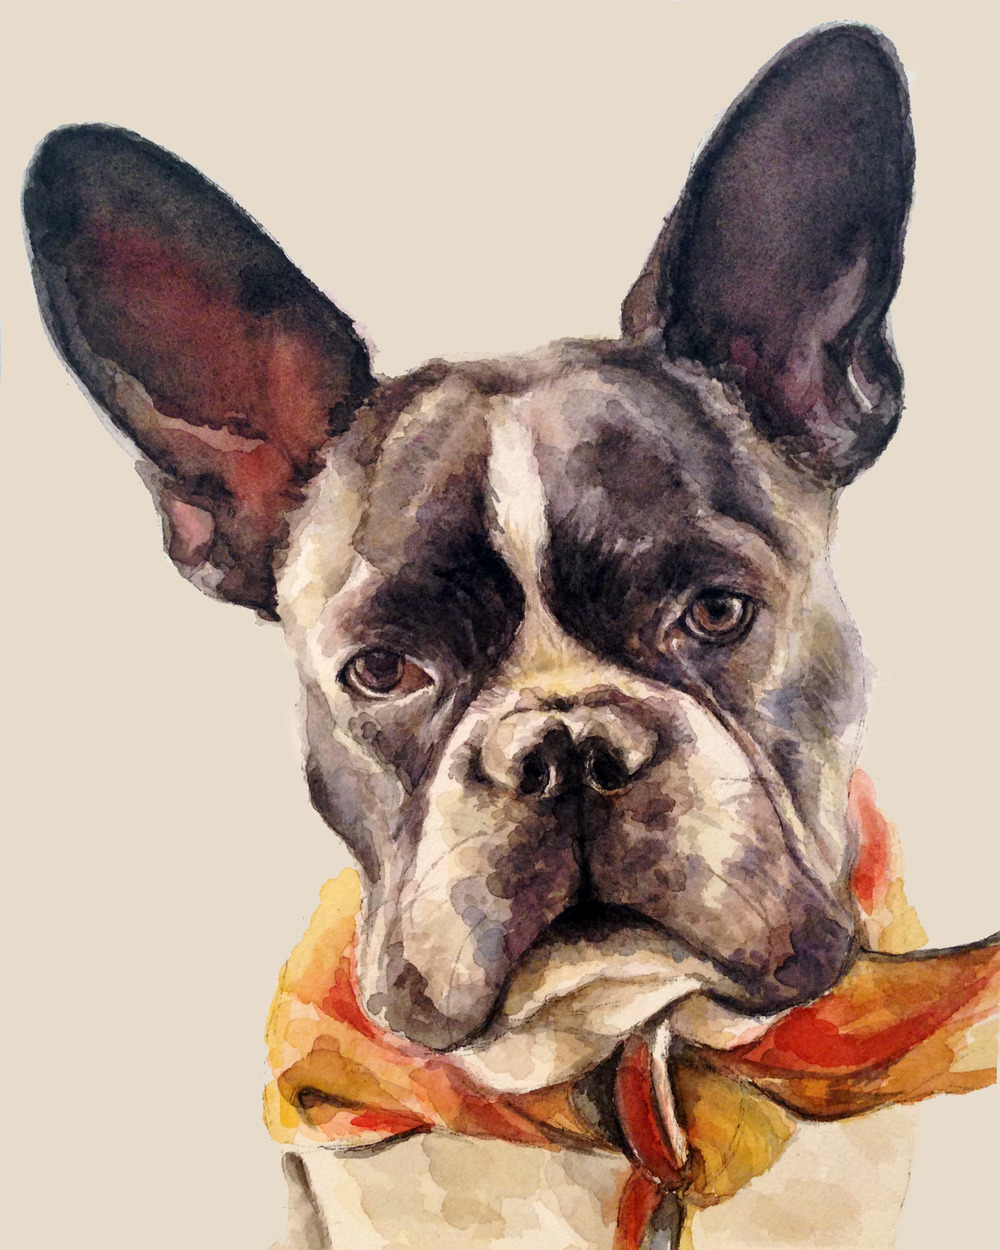 Gus the French bulldog